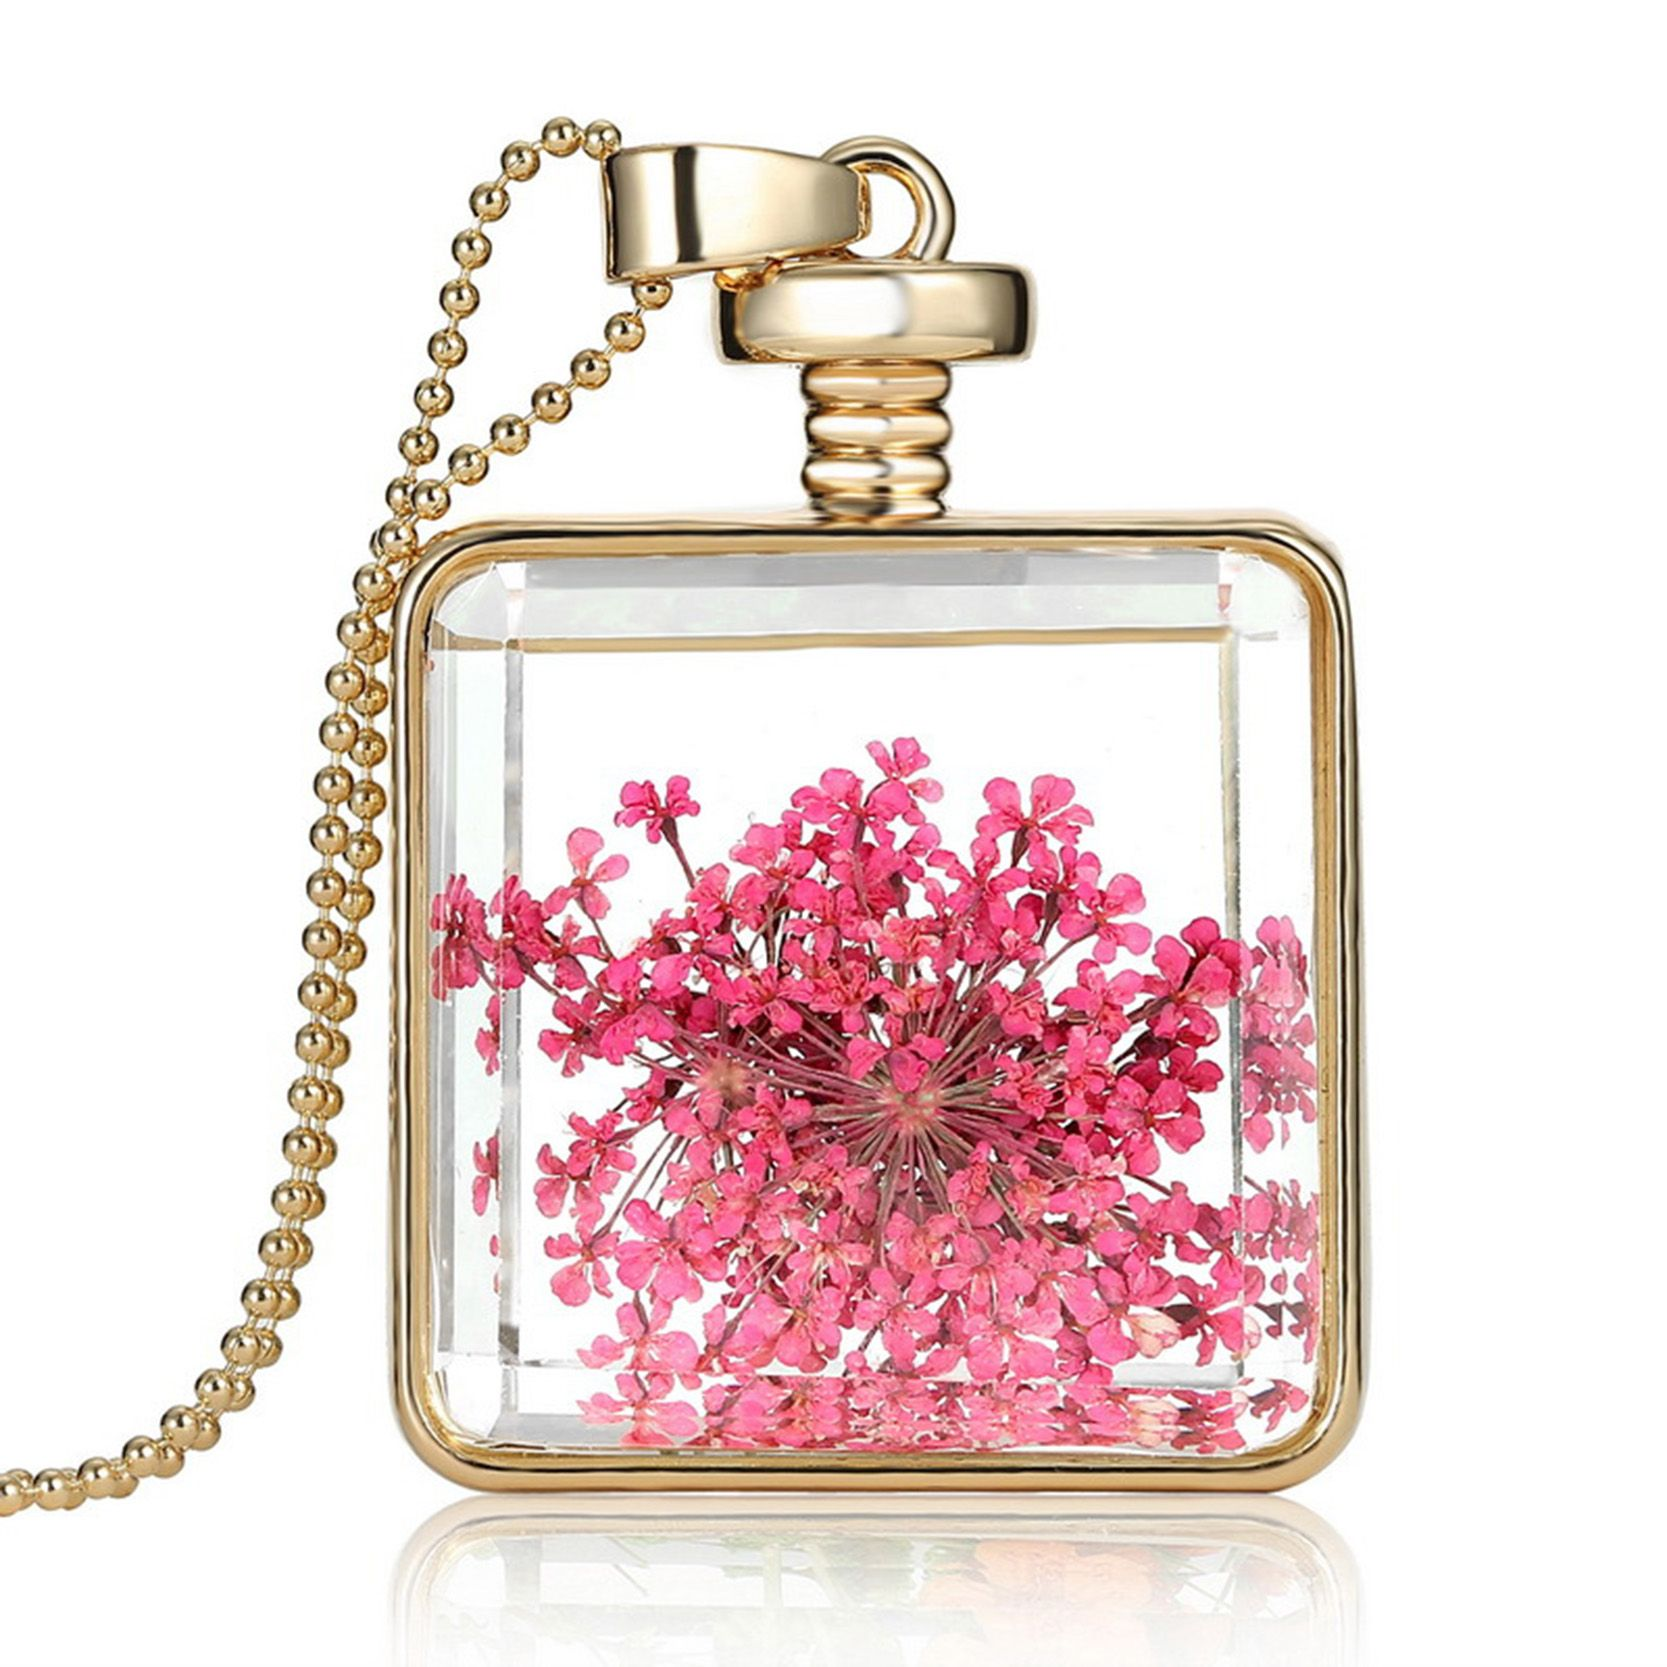 2017 Pink Dried Flower Necklaces Jewelry Square Glass Pendant Necklace Fashion Long Golden Chain Statement Necklace for Women #Affiliate